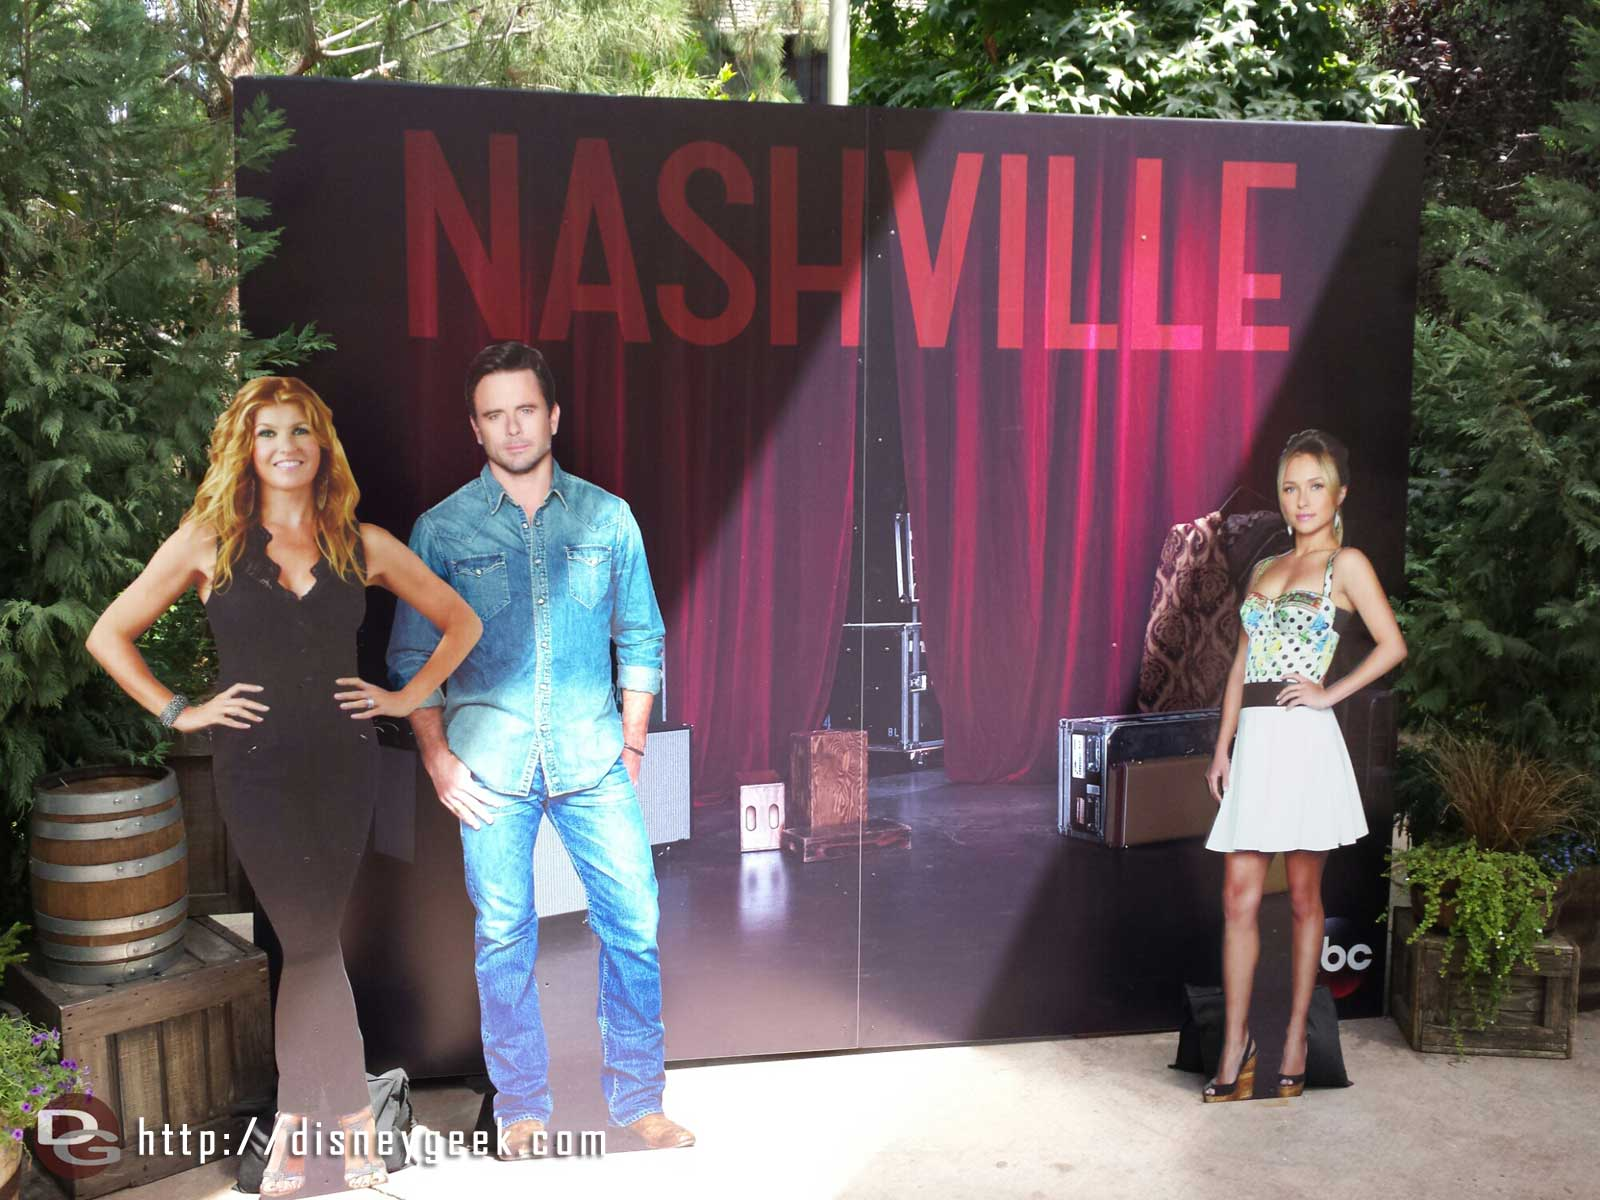 A photo op with cut outs of the Nashville cast at the Music of Nashville in the Big Thunder Ranch